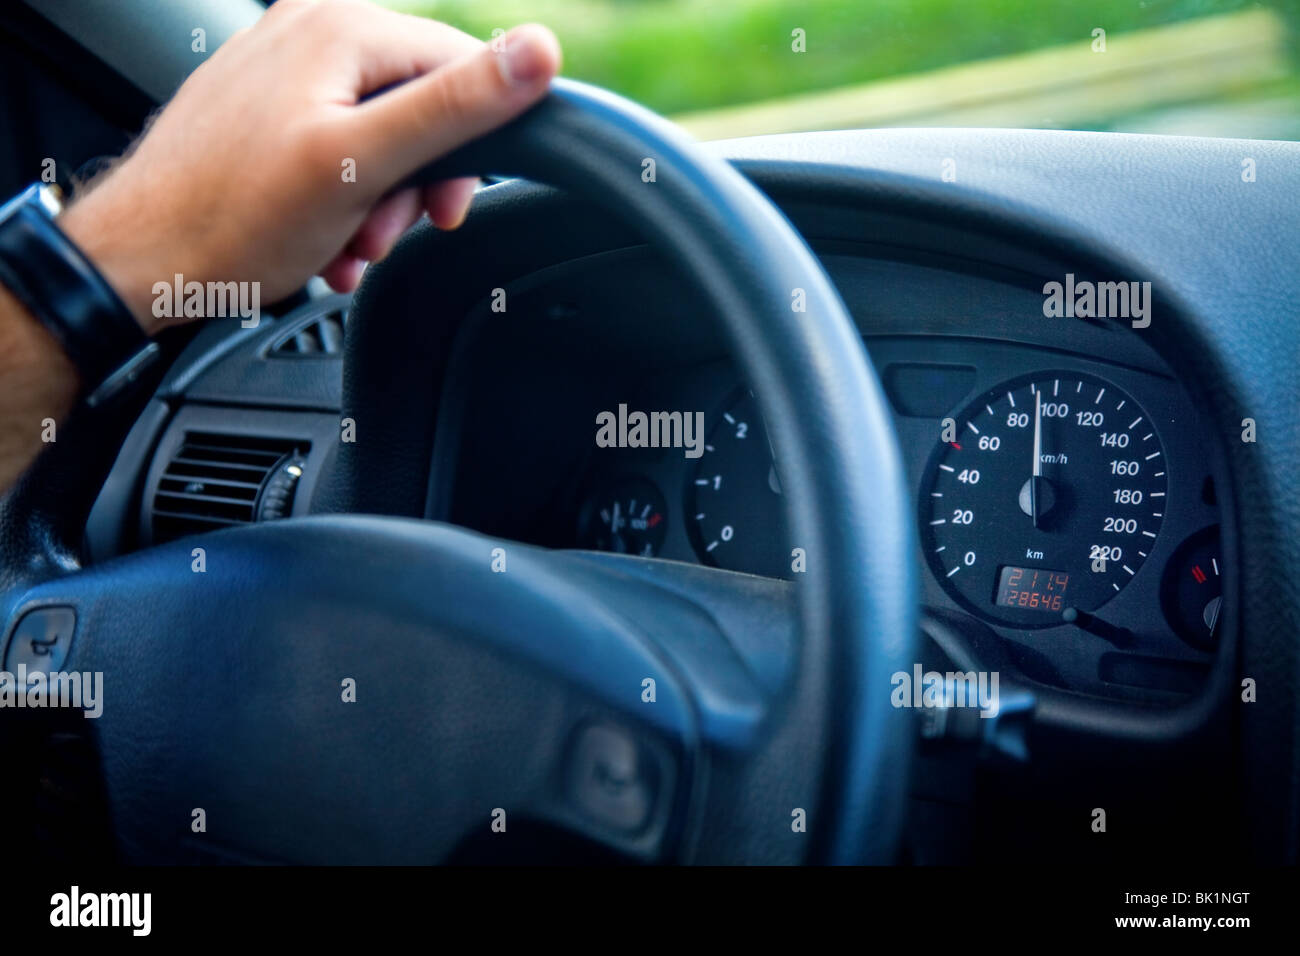 Hand of man driving a car - Stock Image